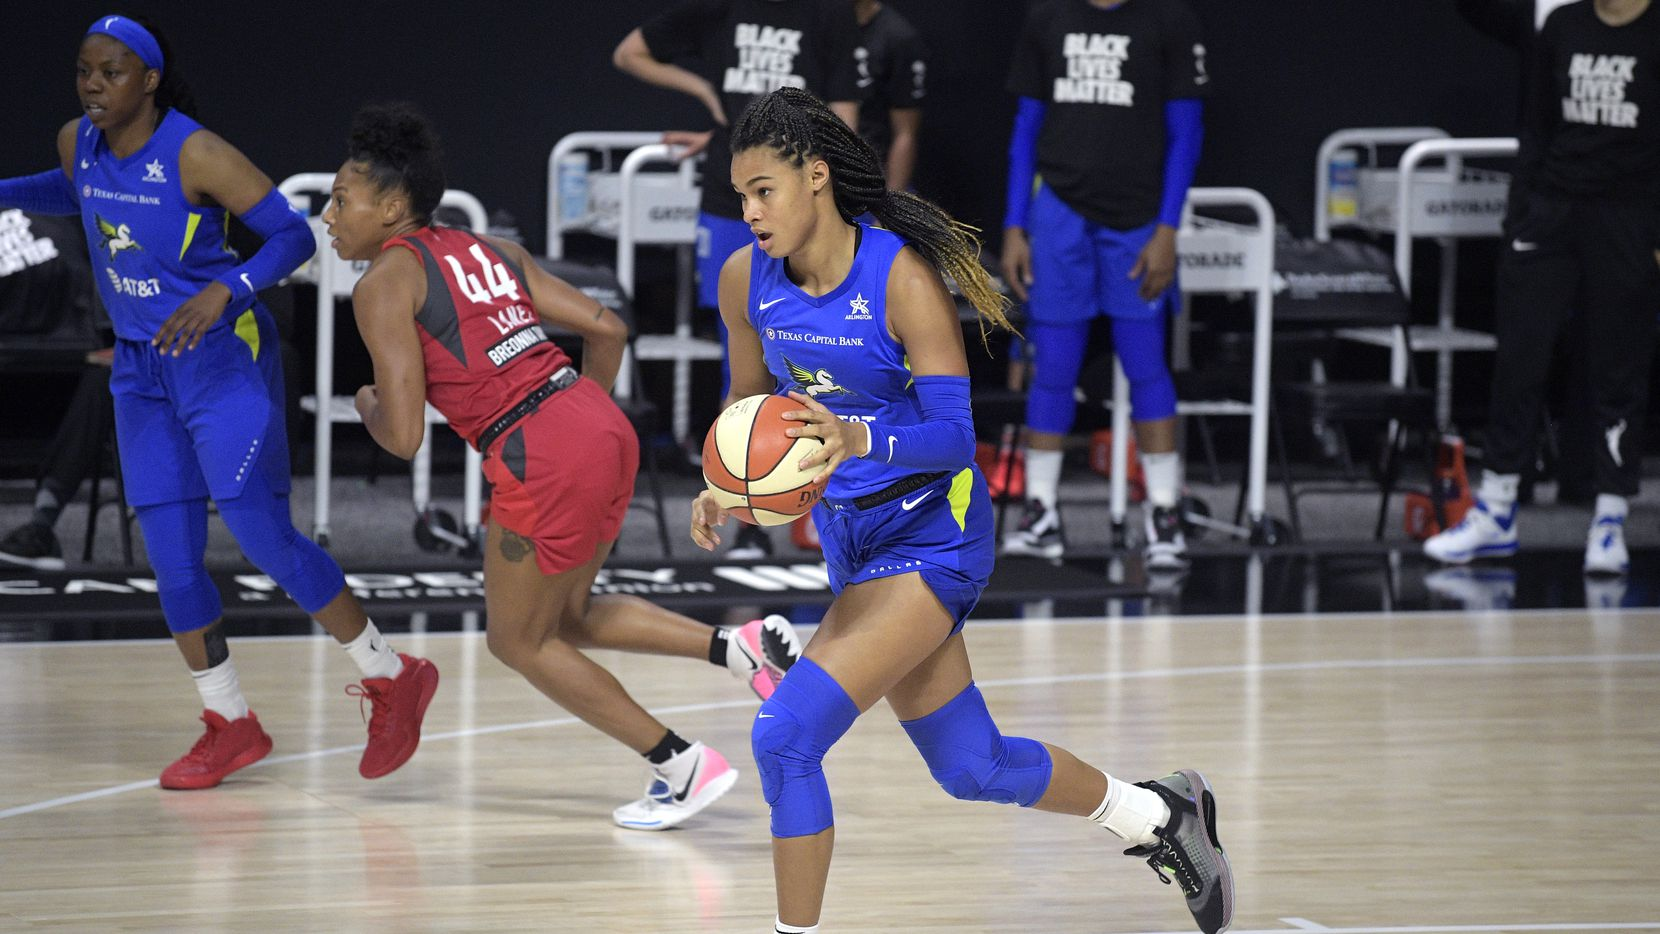 Dallas Wings forward Satou Sabally pushes the ball up the court during the second half of a WNBA basketball game against the Atlanta Dream, Sunday, July 26, 2020, in Bradenton, Fla.